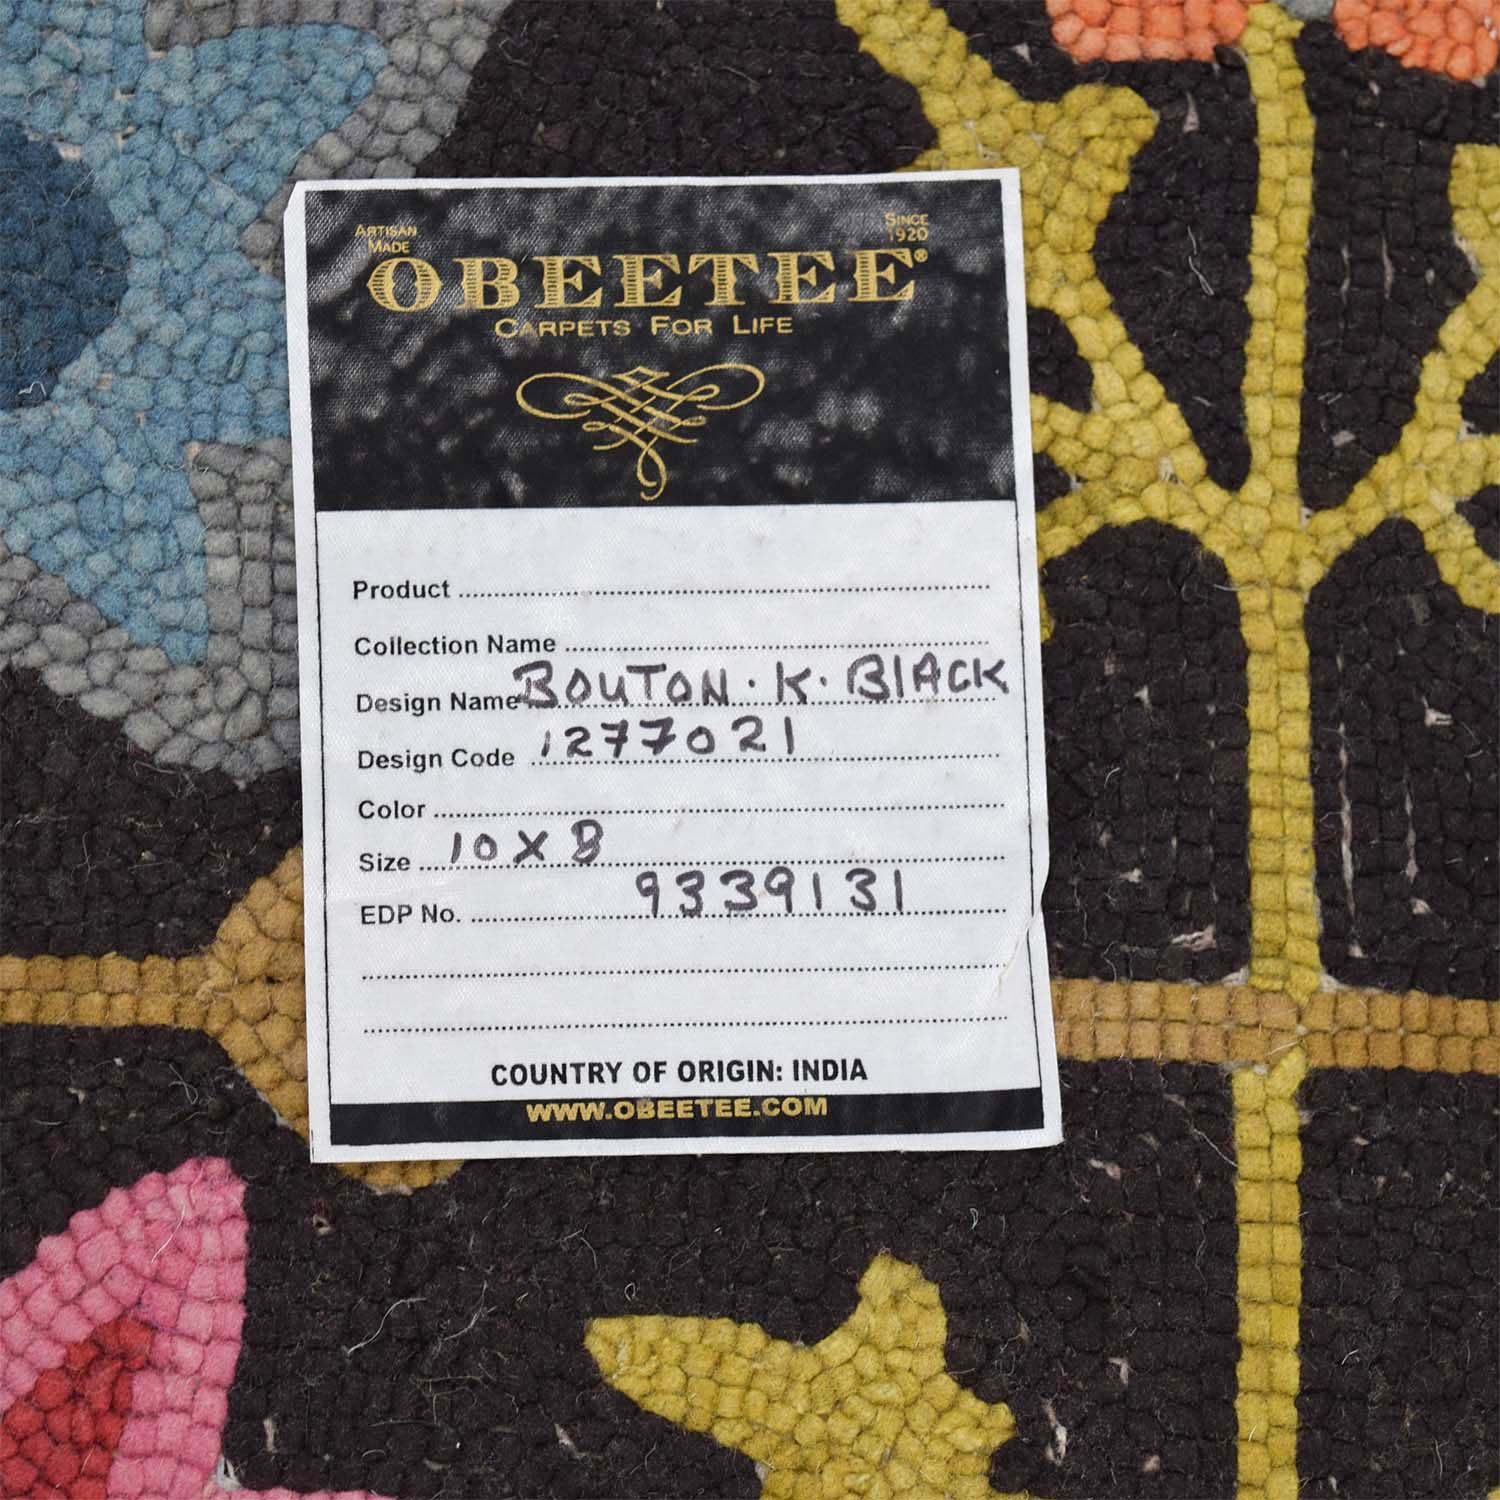 Obeetee Obeetee Black with Multi-Colored Floral Rug Black/Yellow/Blue/Pink/Red